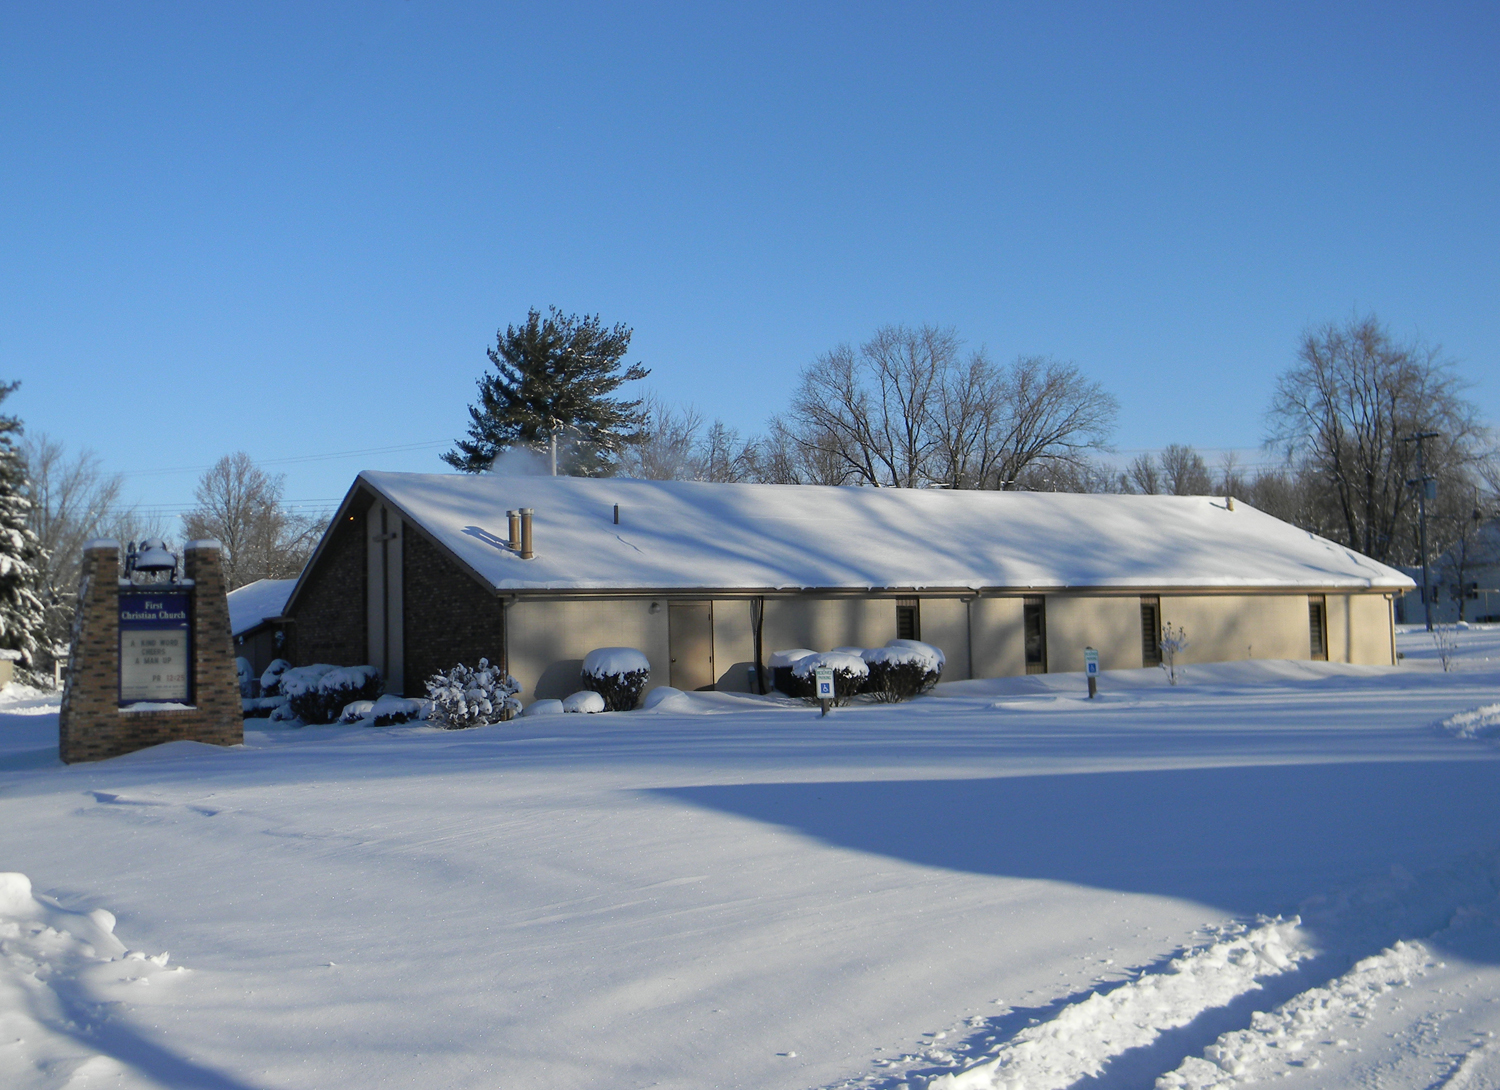 FirstChristianChurchSnowScene5in